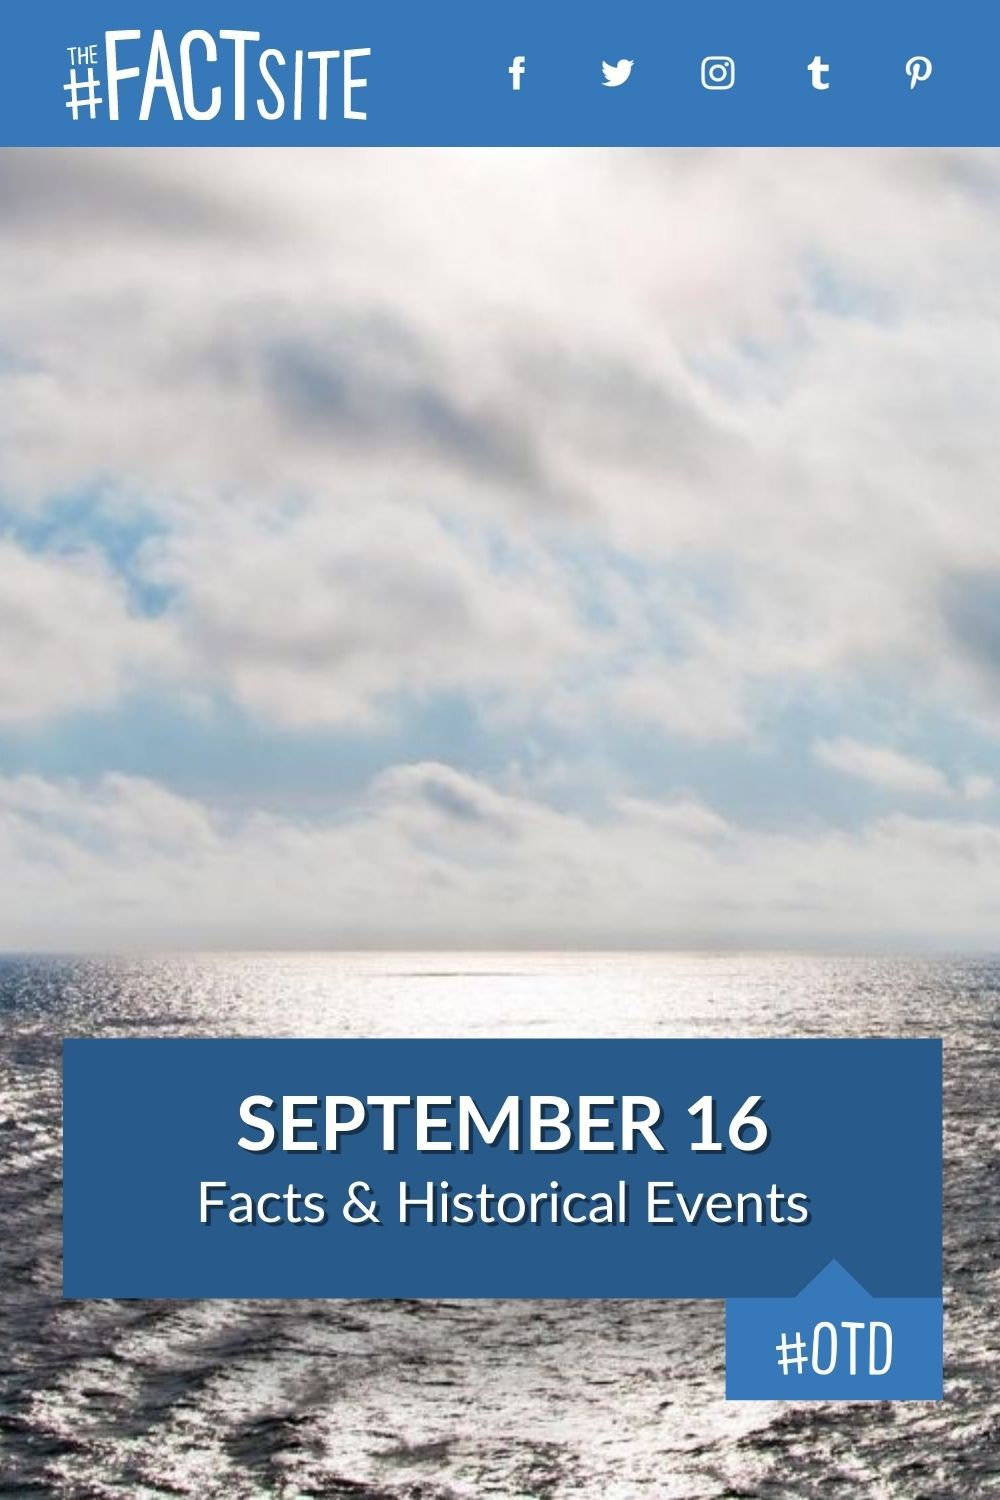 Facts & Historic Events That Happened on September 16